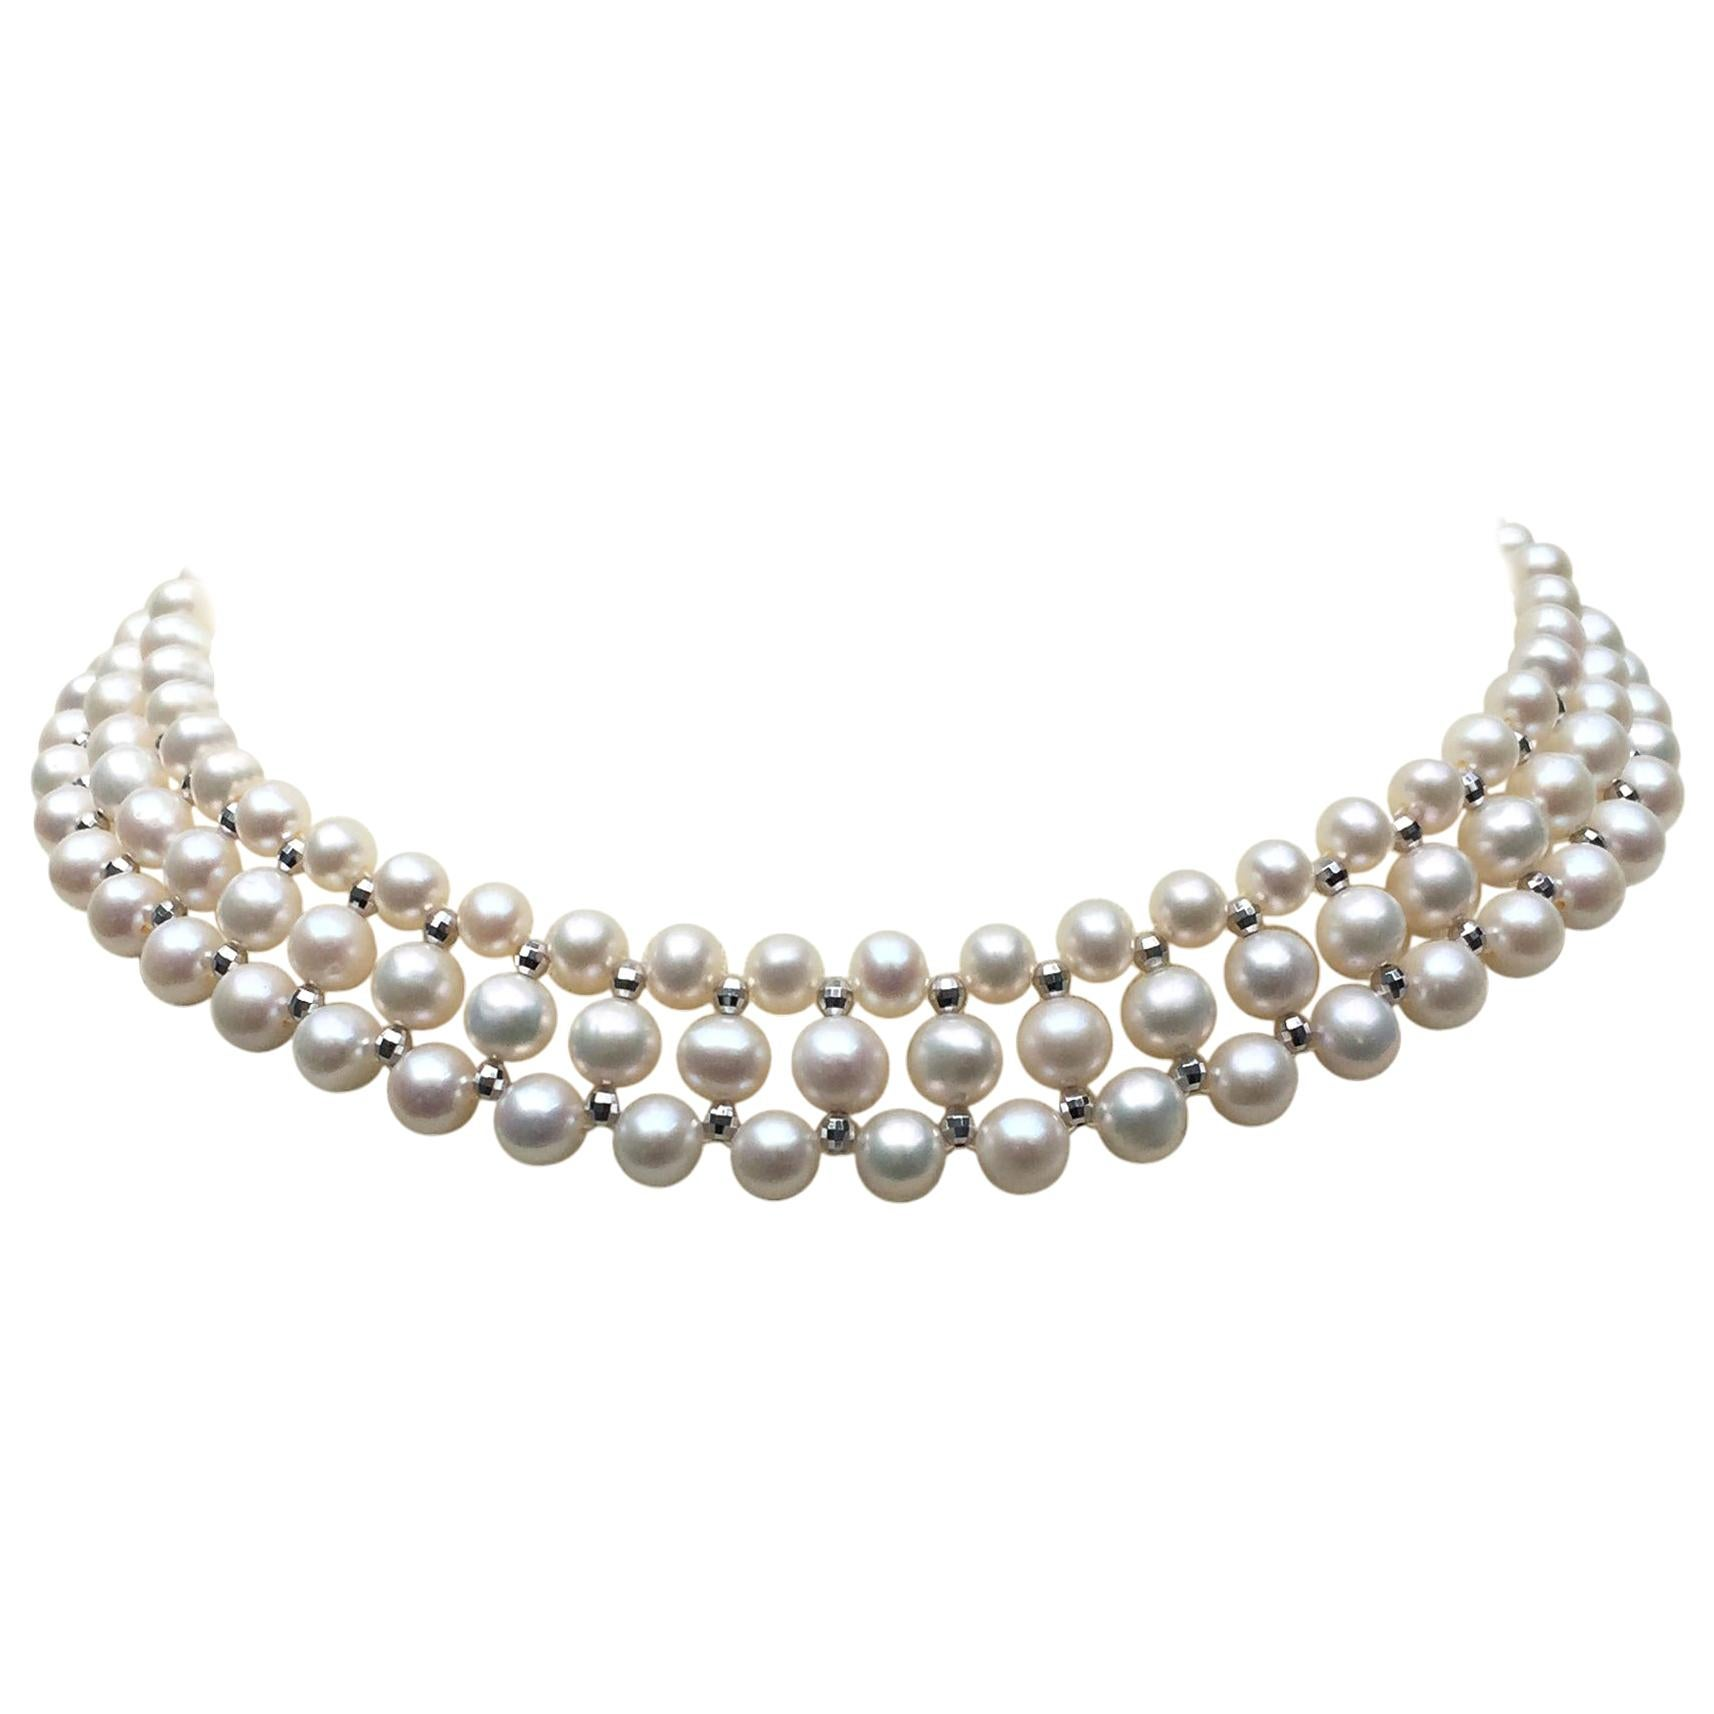 Marina J Woven Pearl Necklace with 14 K White Gold Faceted Beads and Clasp